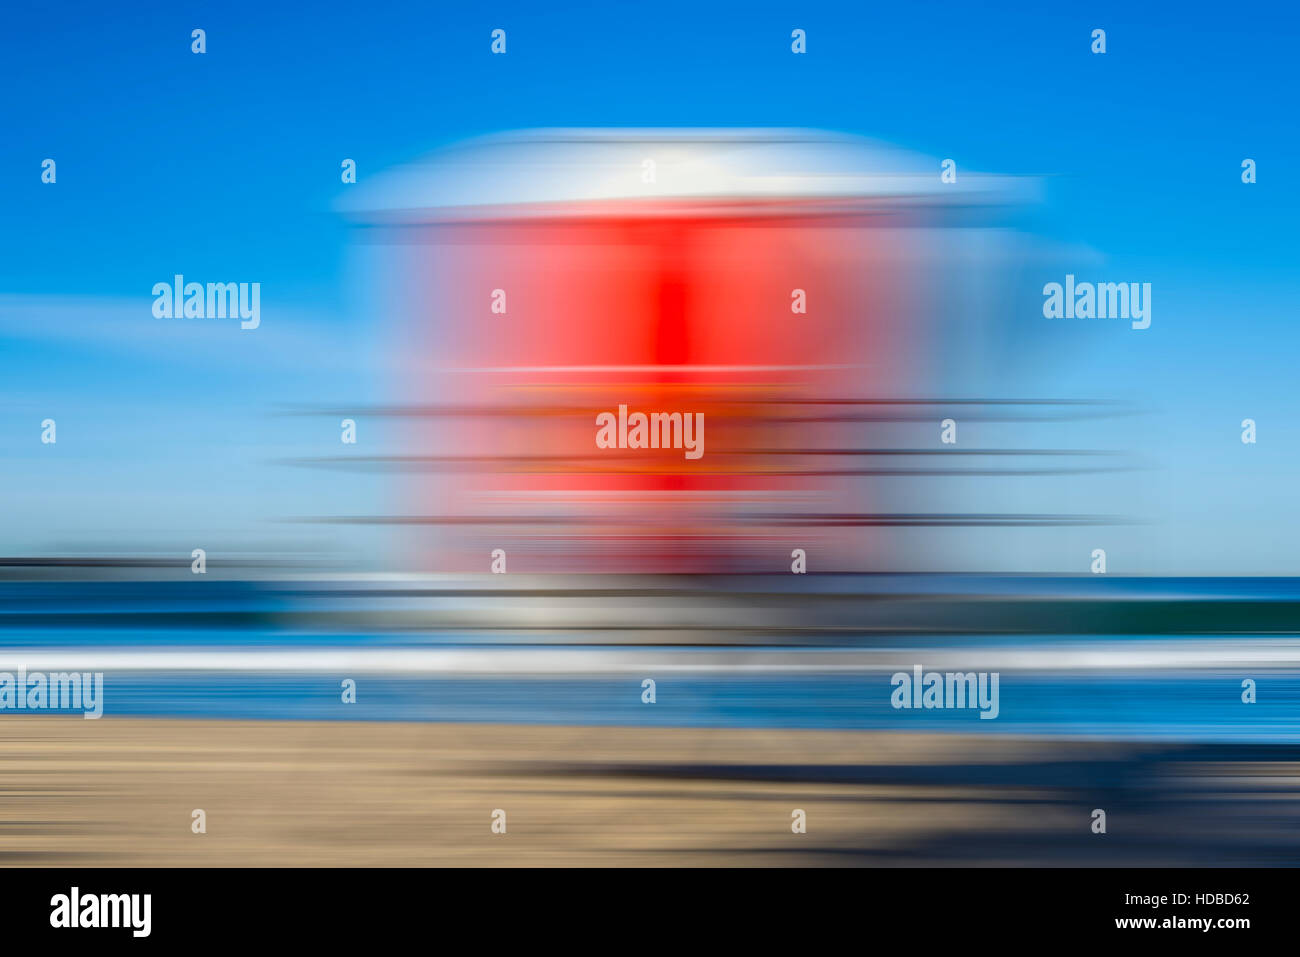 lifeguard tower, coastal scene, motion blur effect. - Stock Image